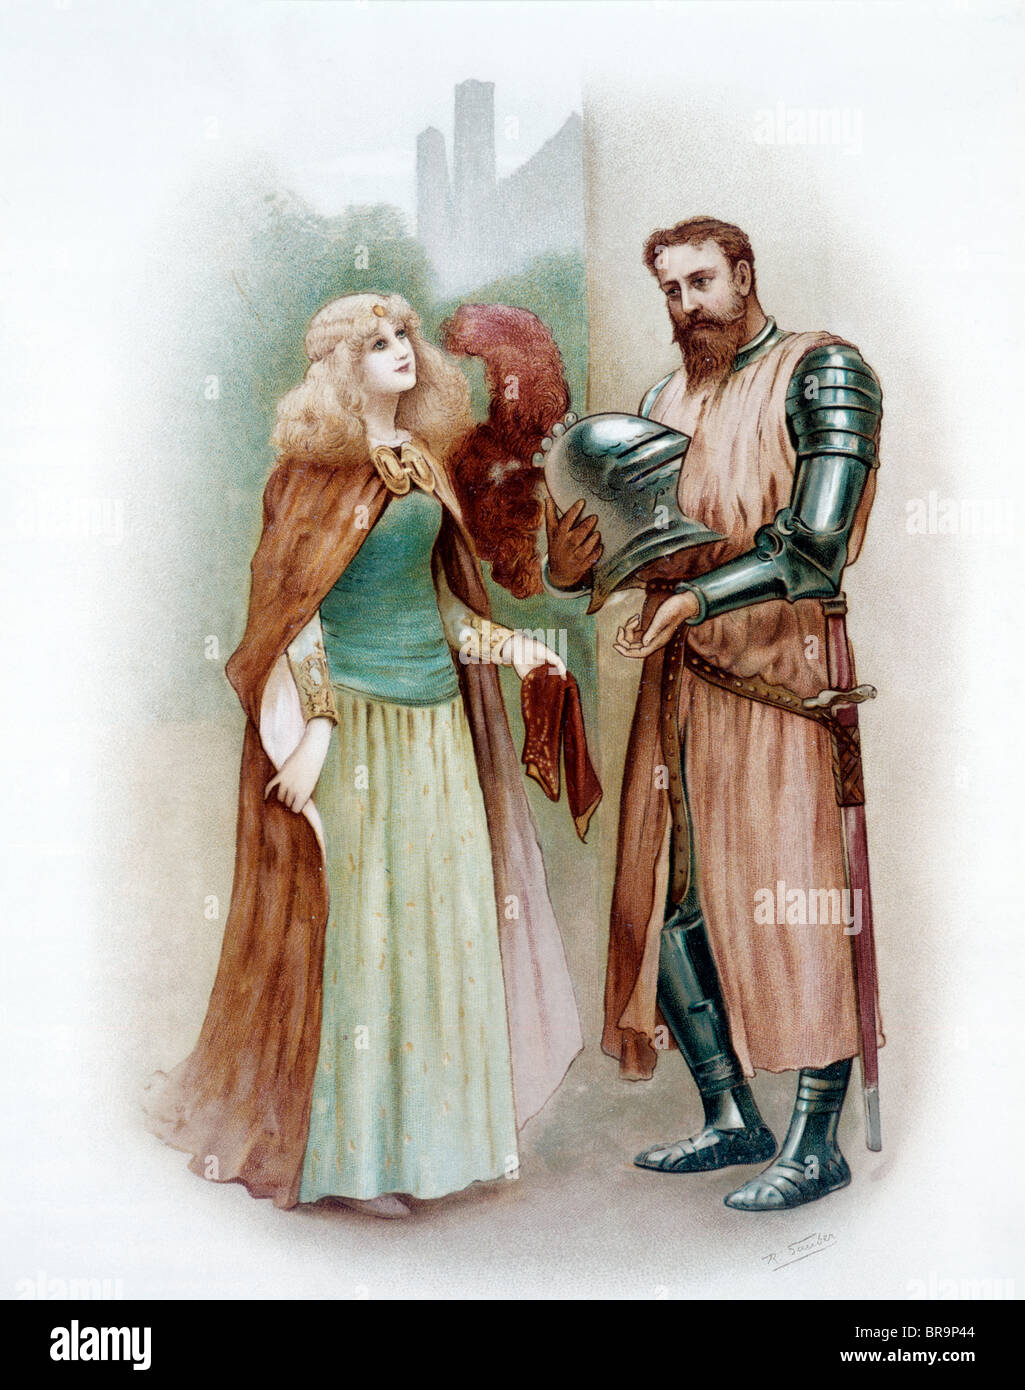 COLOR ILLUSTRATION OF MEDIEVAL KNIGHT LANCELOT AND LADY ELAINE Stock Photo